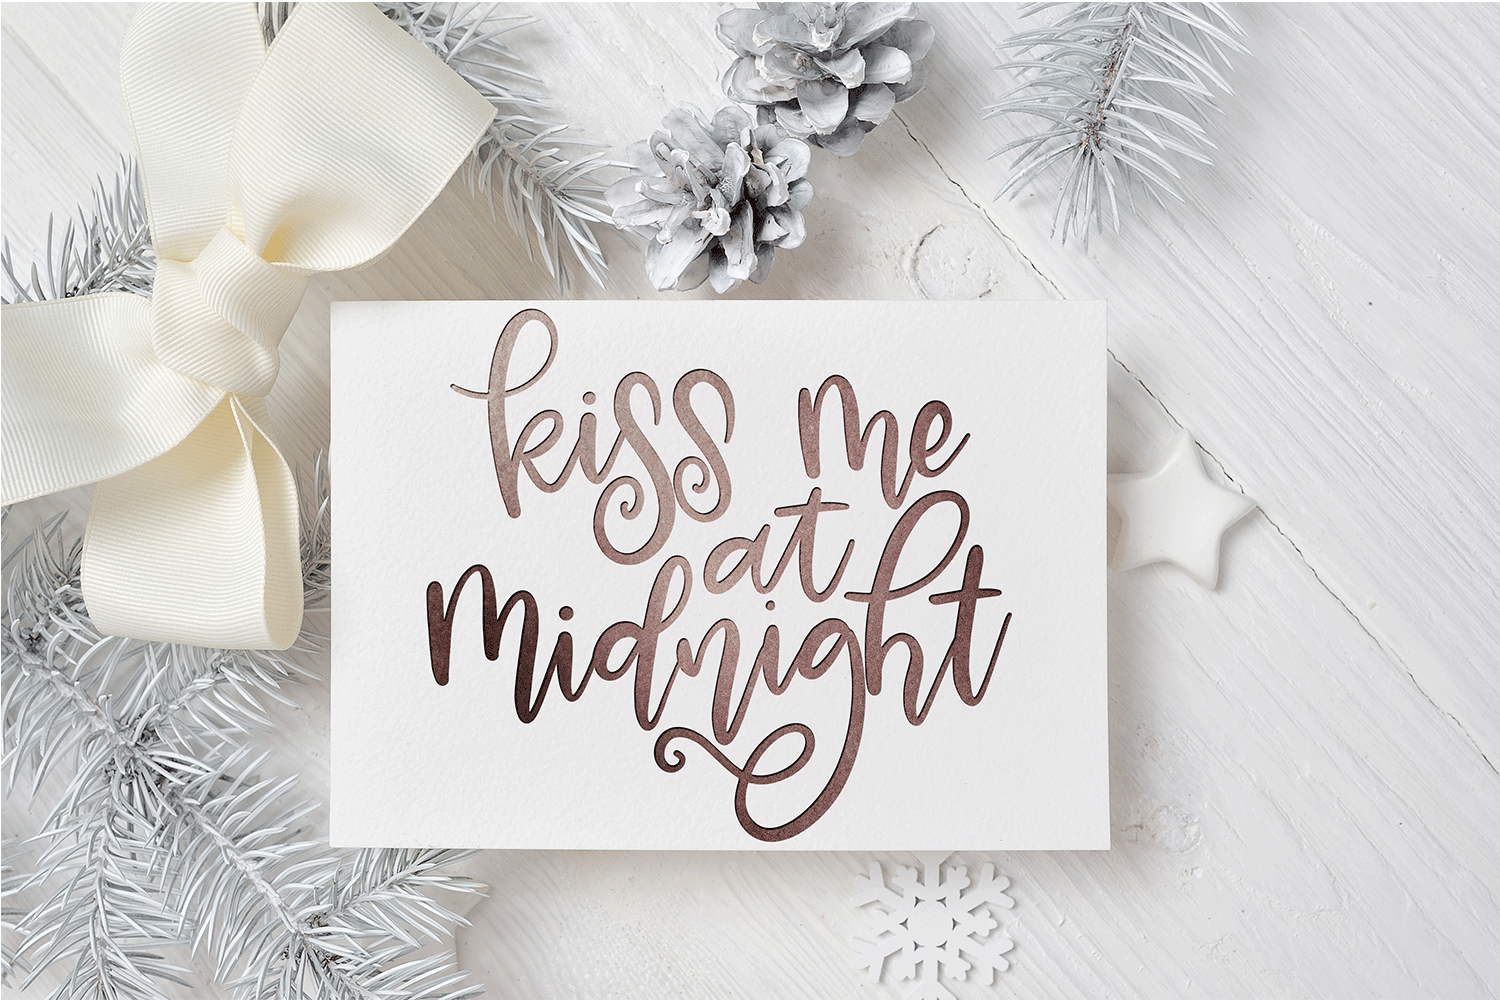 New Year SVG - Kiss Me at Midnight Hand-Lettered Cut File example image 1